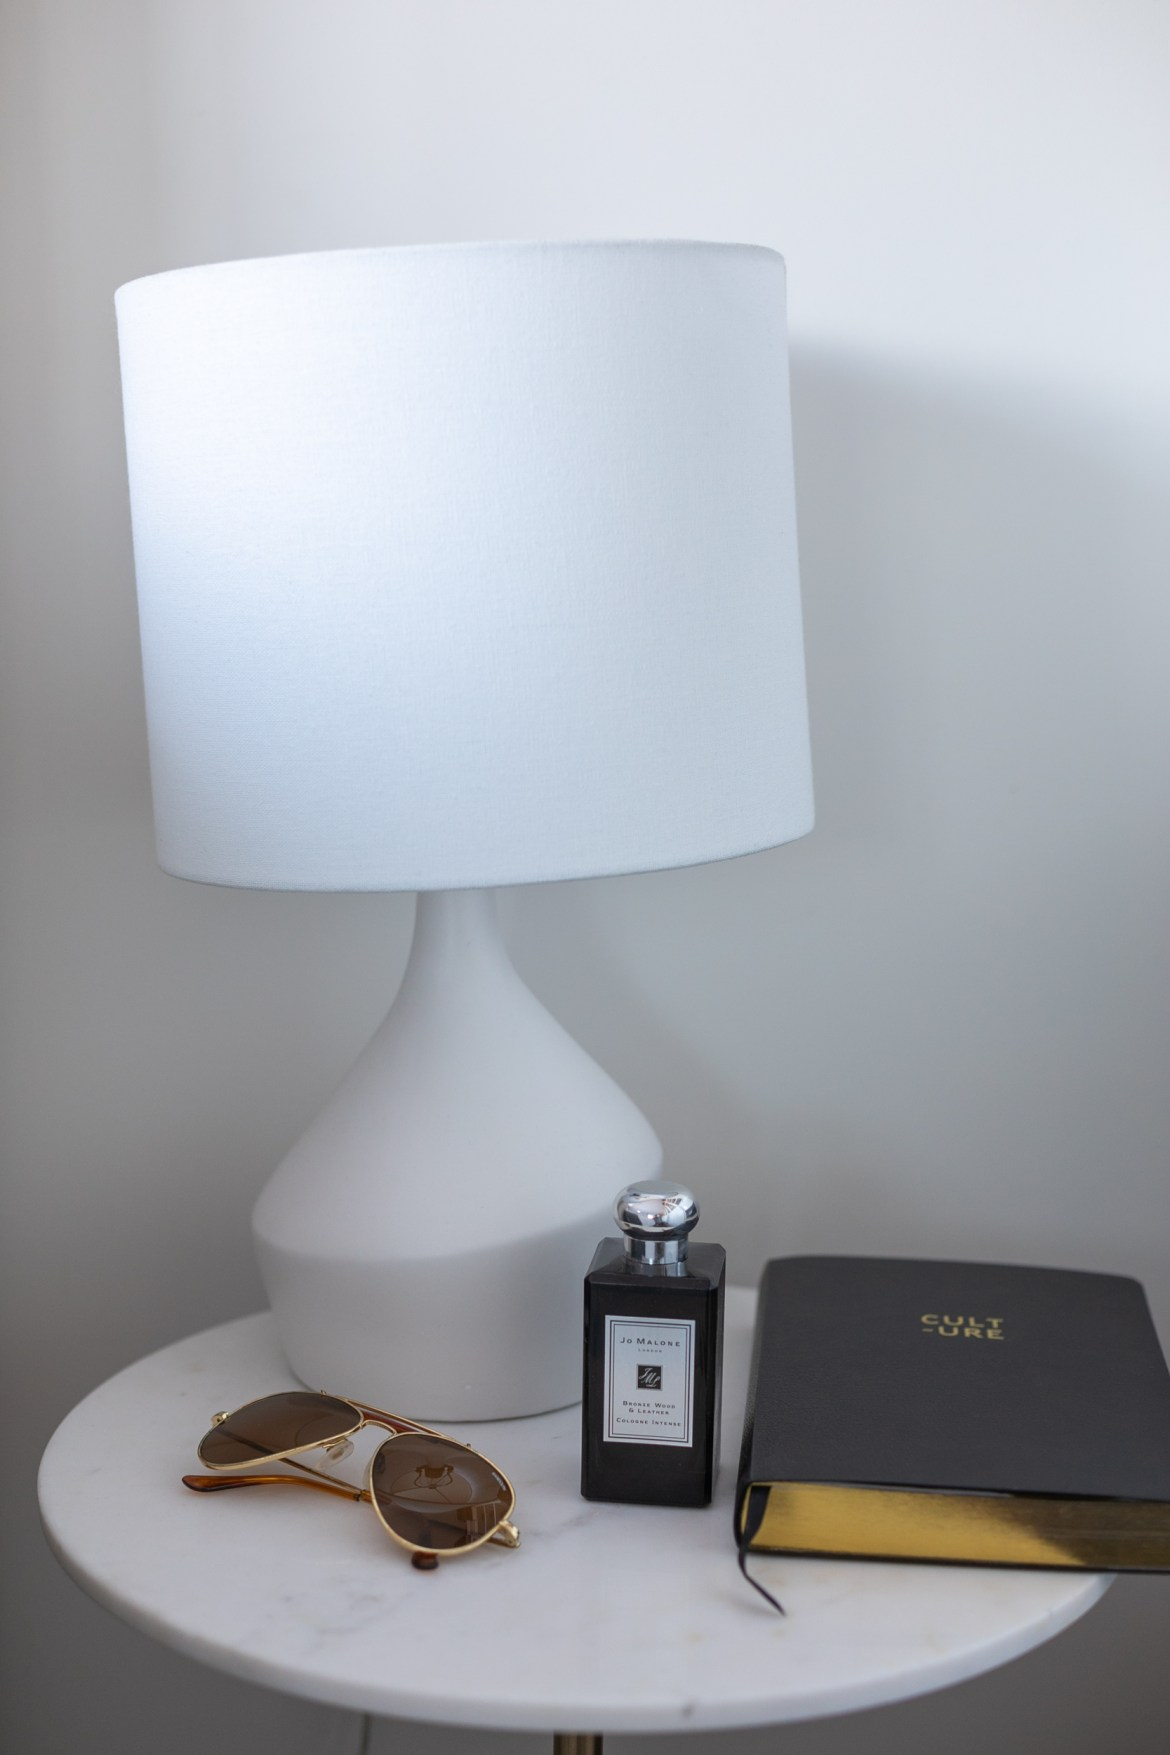 West Elm lamp and marble side table